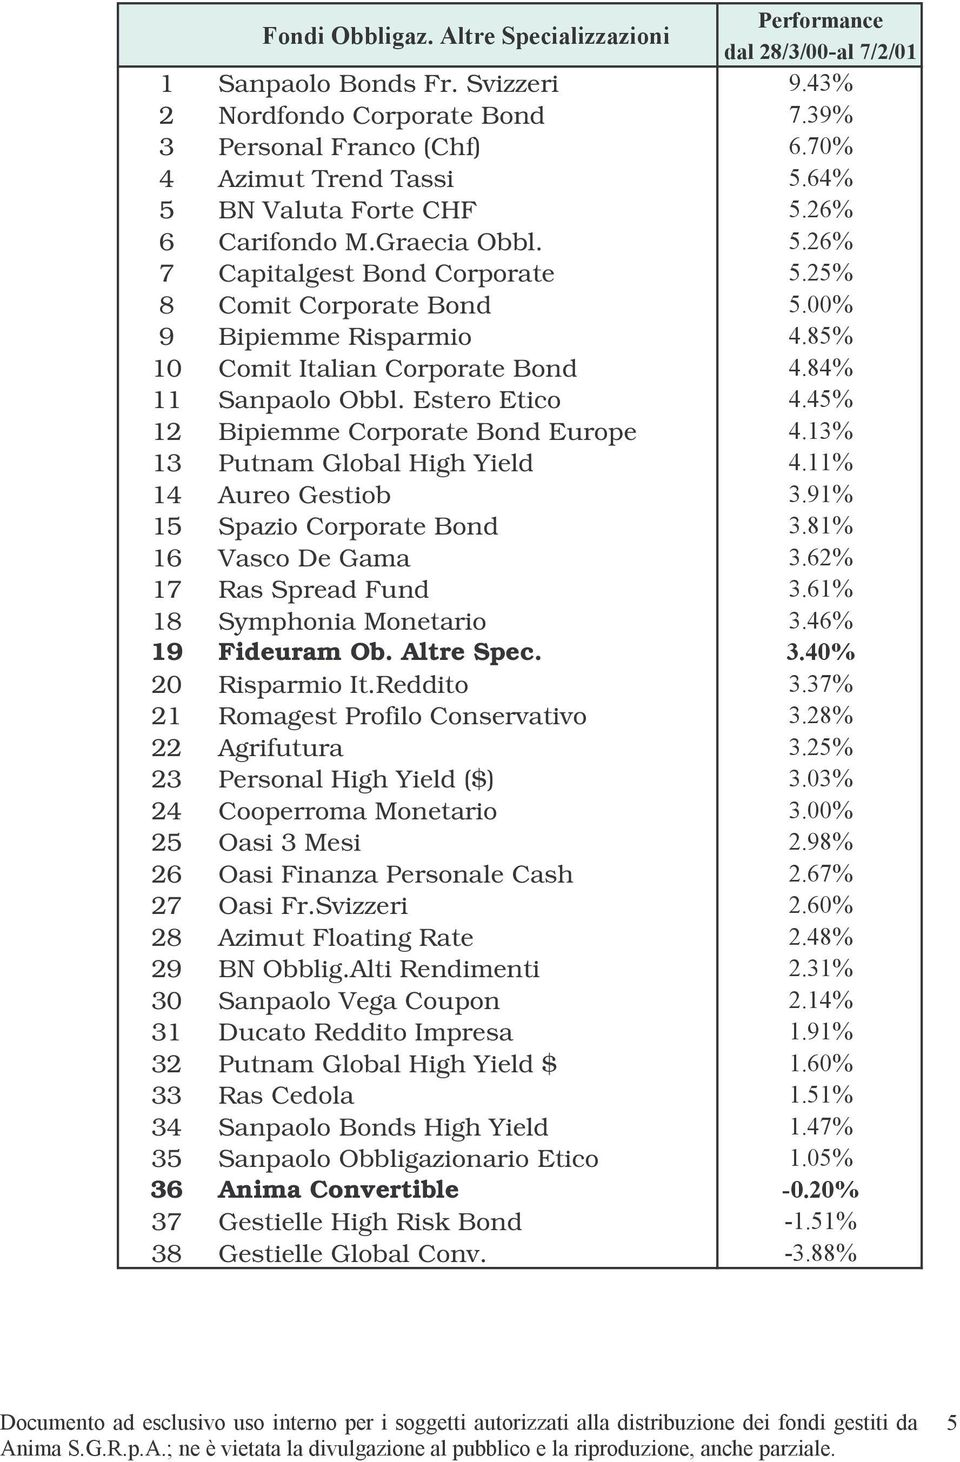 45% 12 Bipiemme Corporate Bond Europe 4.13% 13 Putnam Global High Yield 4.11% 14 Aureo Gestiob 3.91% 15 Spazio Corporate Bond 3.81% 16 Vasco De Gama 3.62% 17 Ras Spread Fund 3.